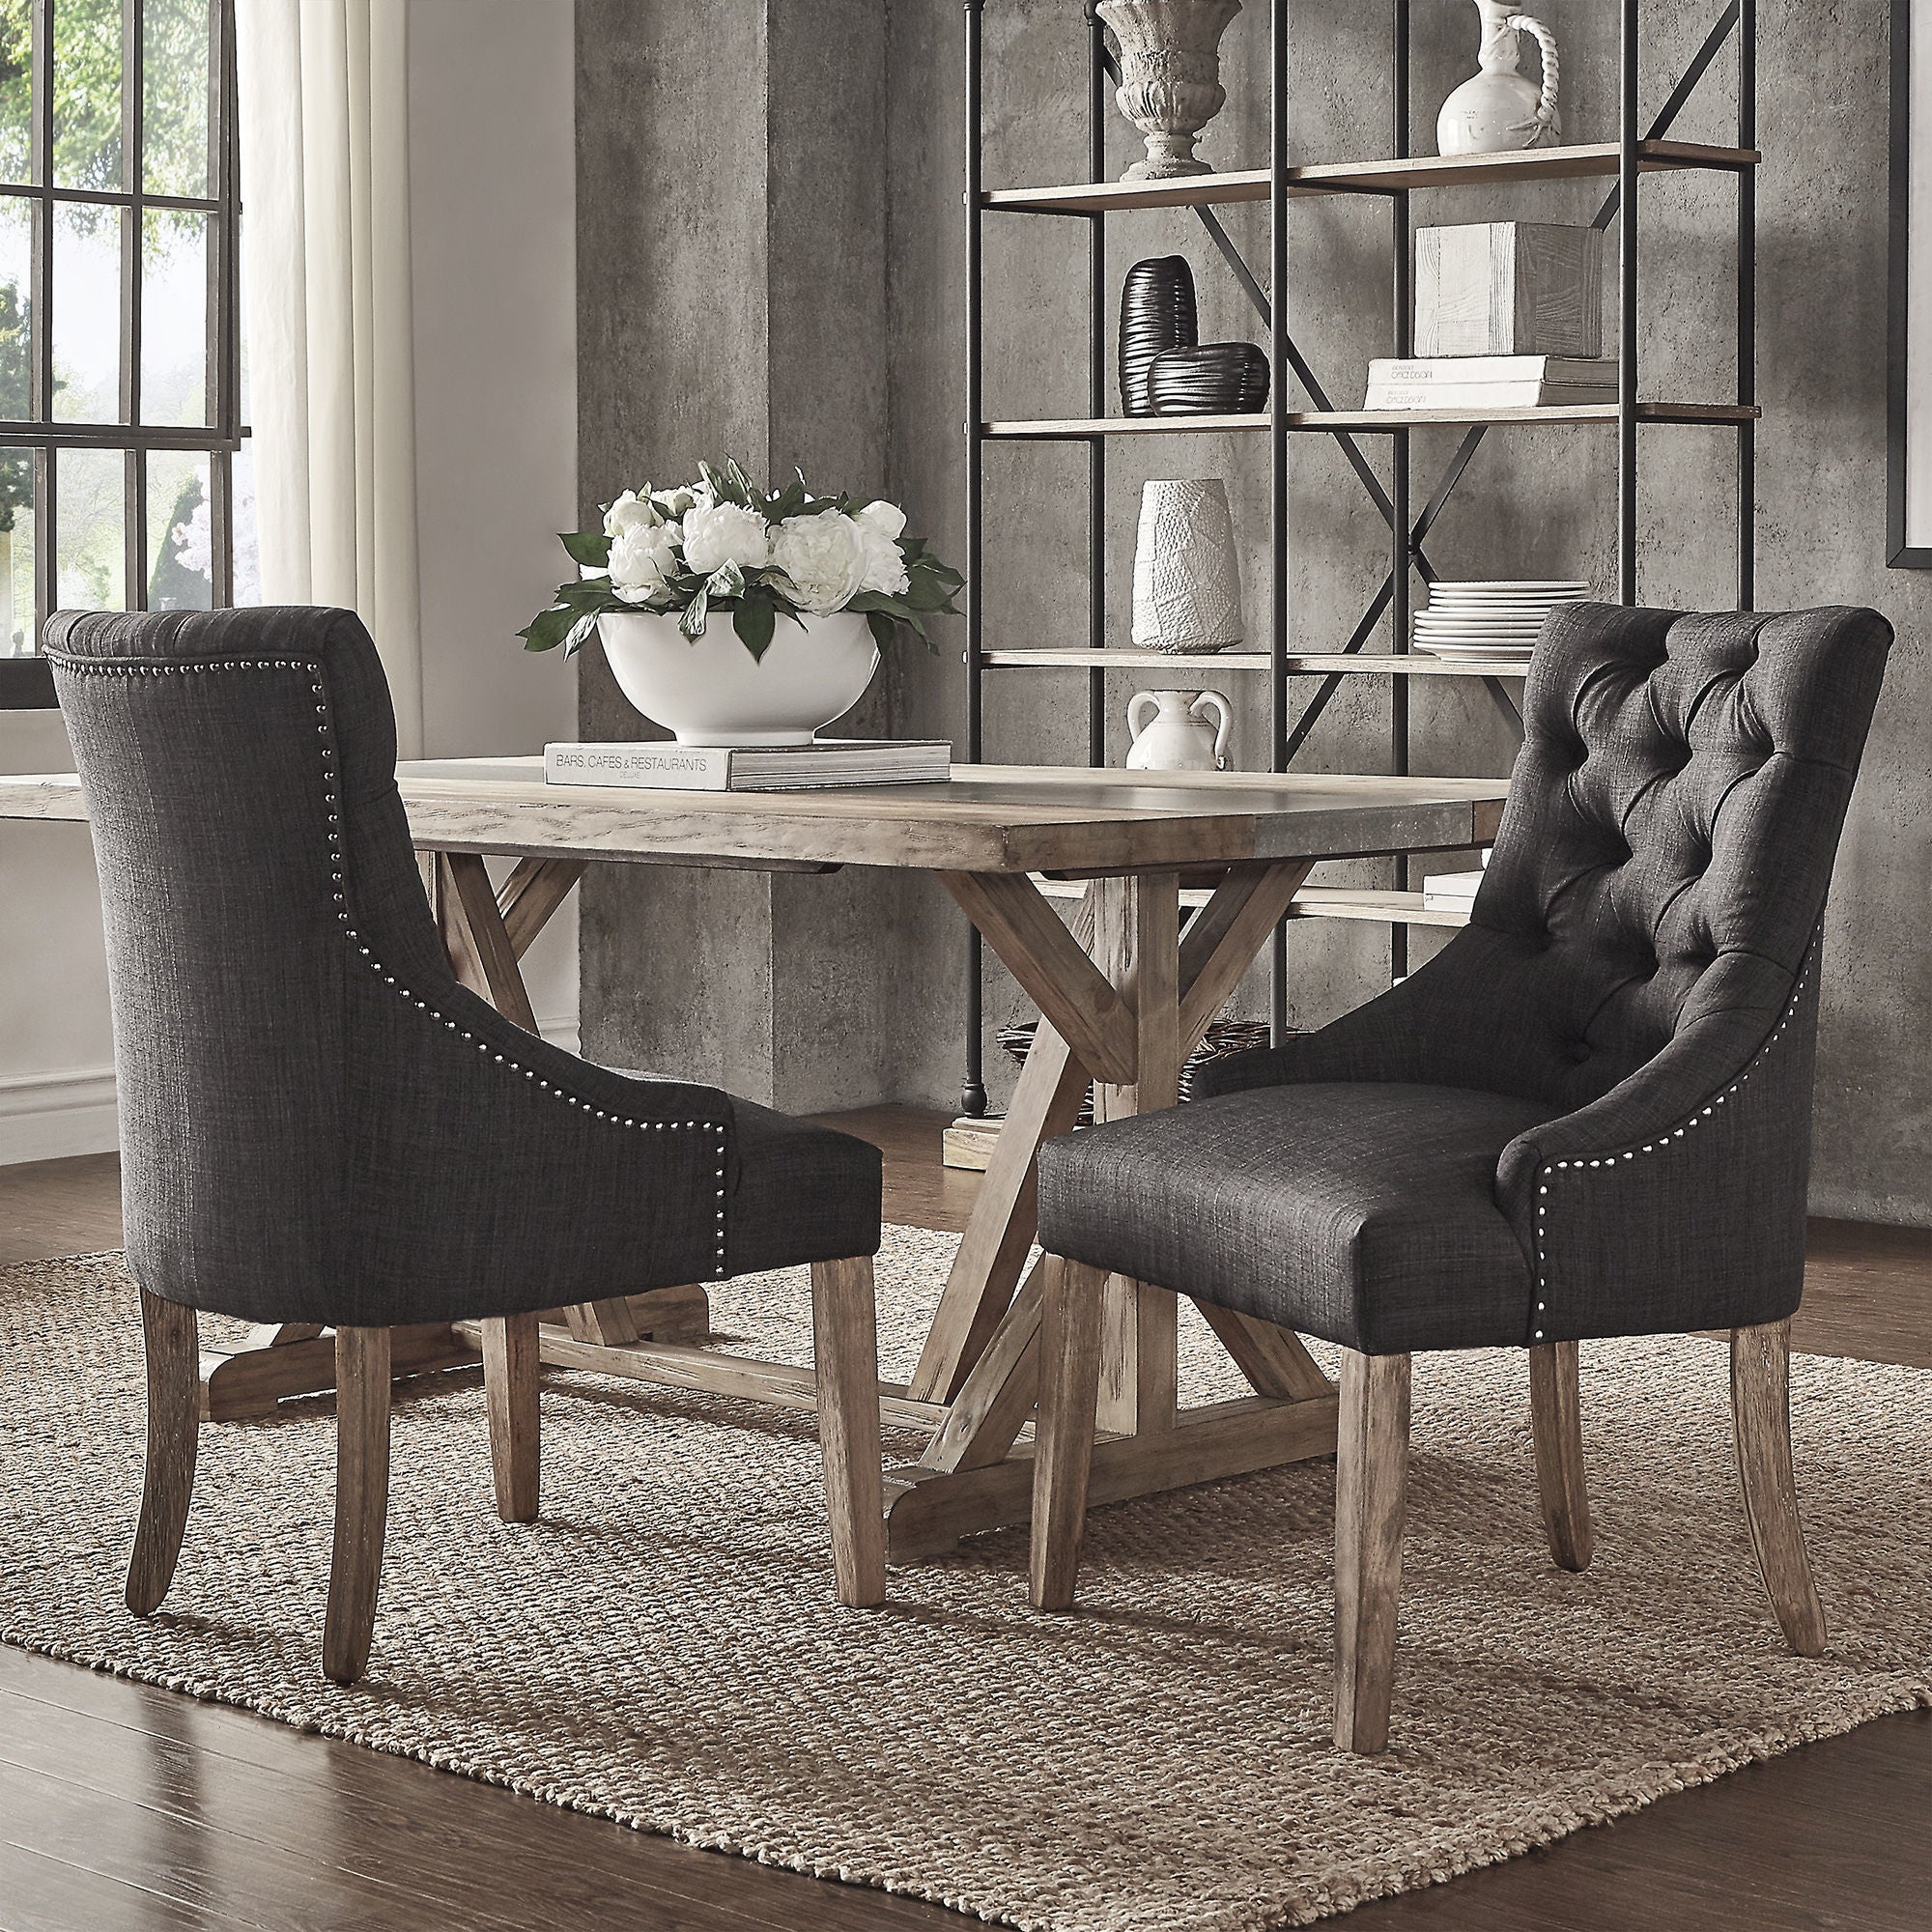 Shop Benchwright Button Tufts Wingback Hostess Chairs (Set of 2) by iNSPIRE Q Artisan - On Sale - Free Shipping Today - Overstock.com - 13179214 & Shop Benchwright Button Tufts Wingback Hostess Chairs (Set of 2) by ...